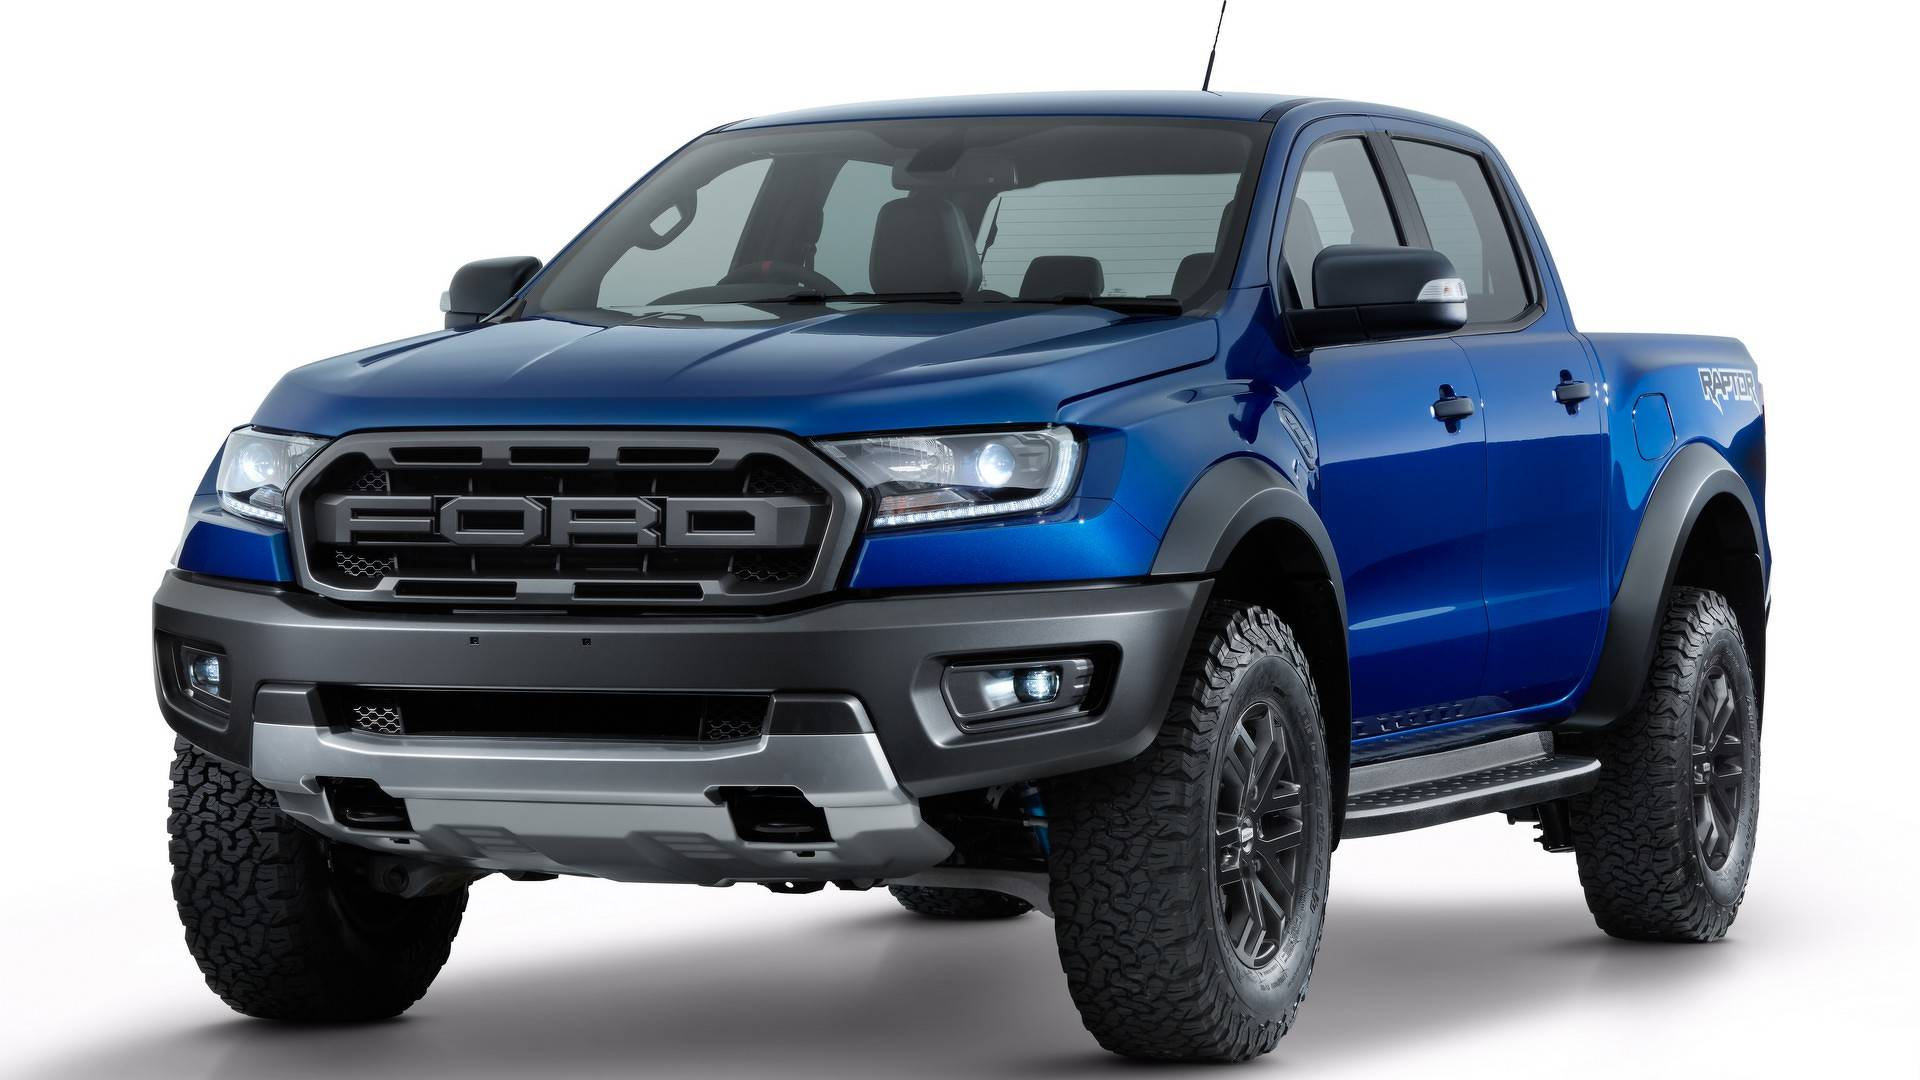 Ford Ranger Raptor 2018 (2)